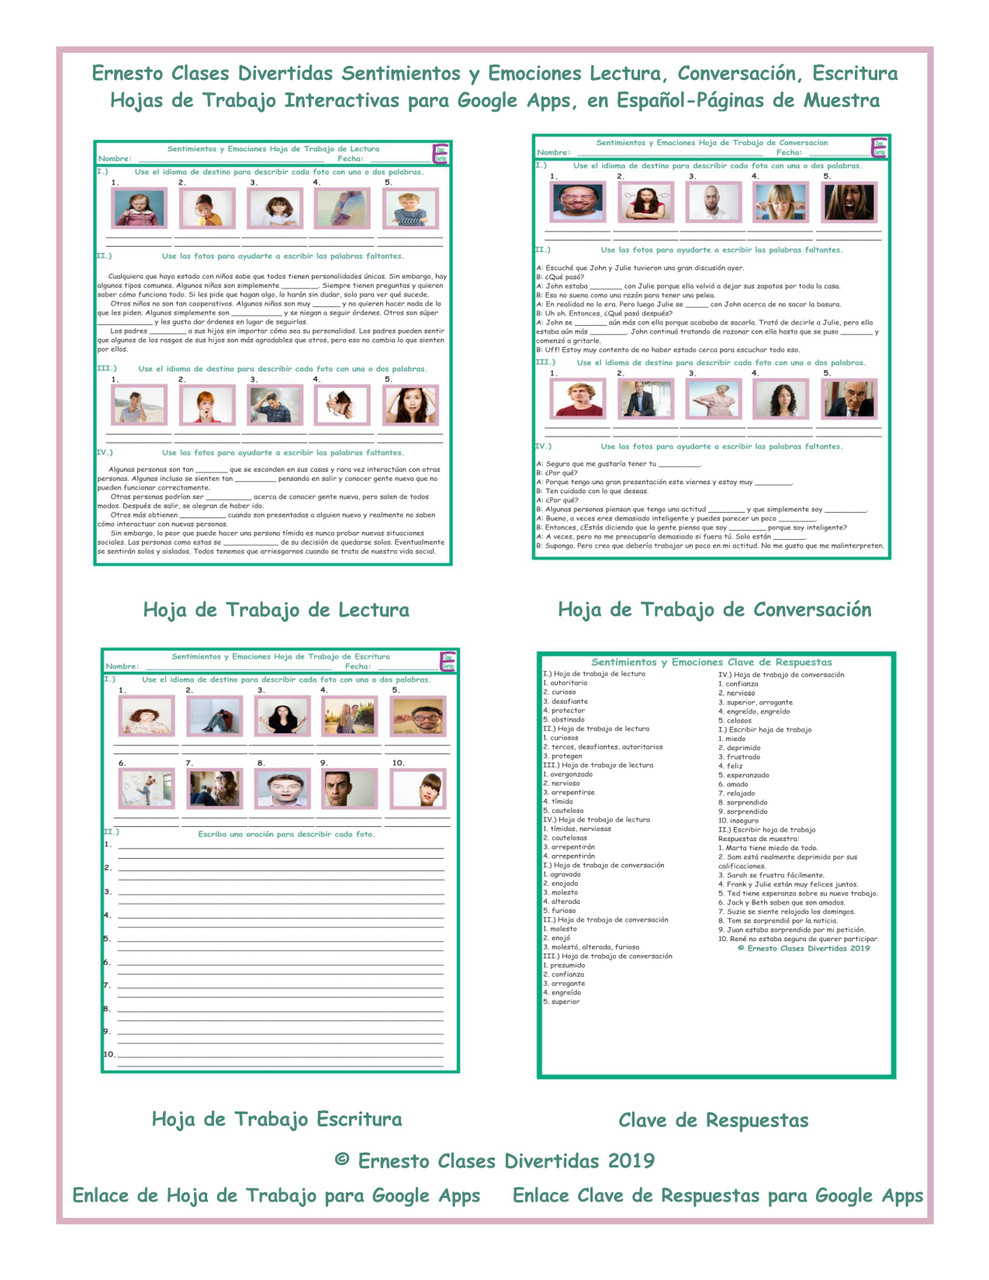 Feelings and Emotions Read-Converse-Write Spanish Interactive Worksheets-Google  Apps - Amped Up Learning [ 1280 x 989 Pixel ]